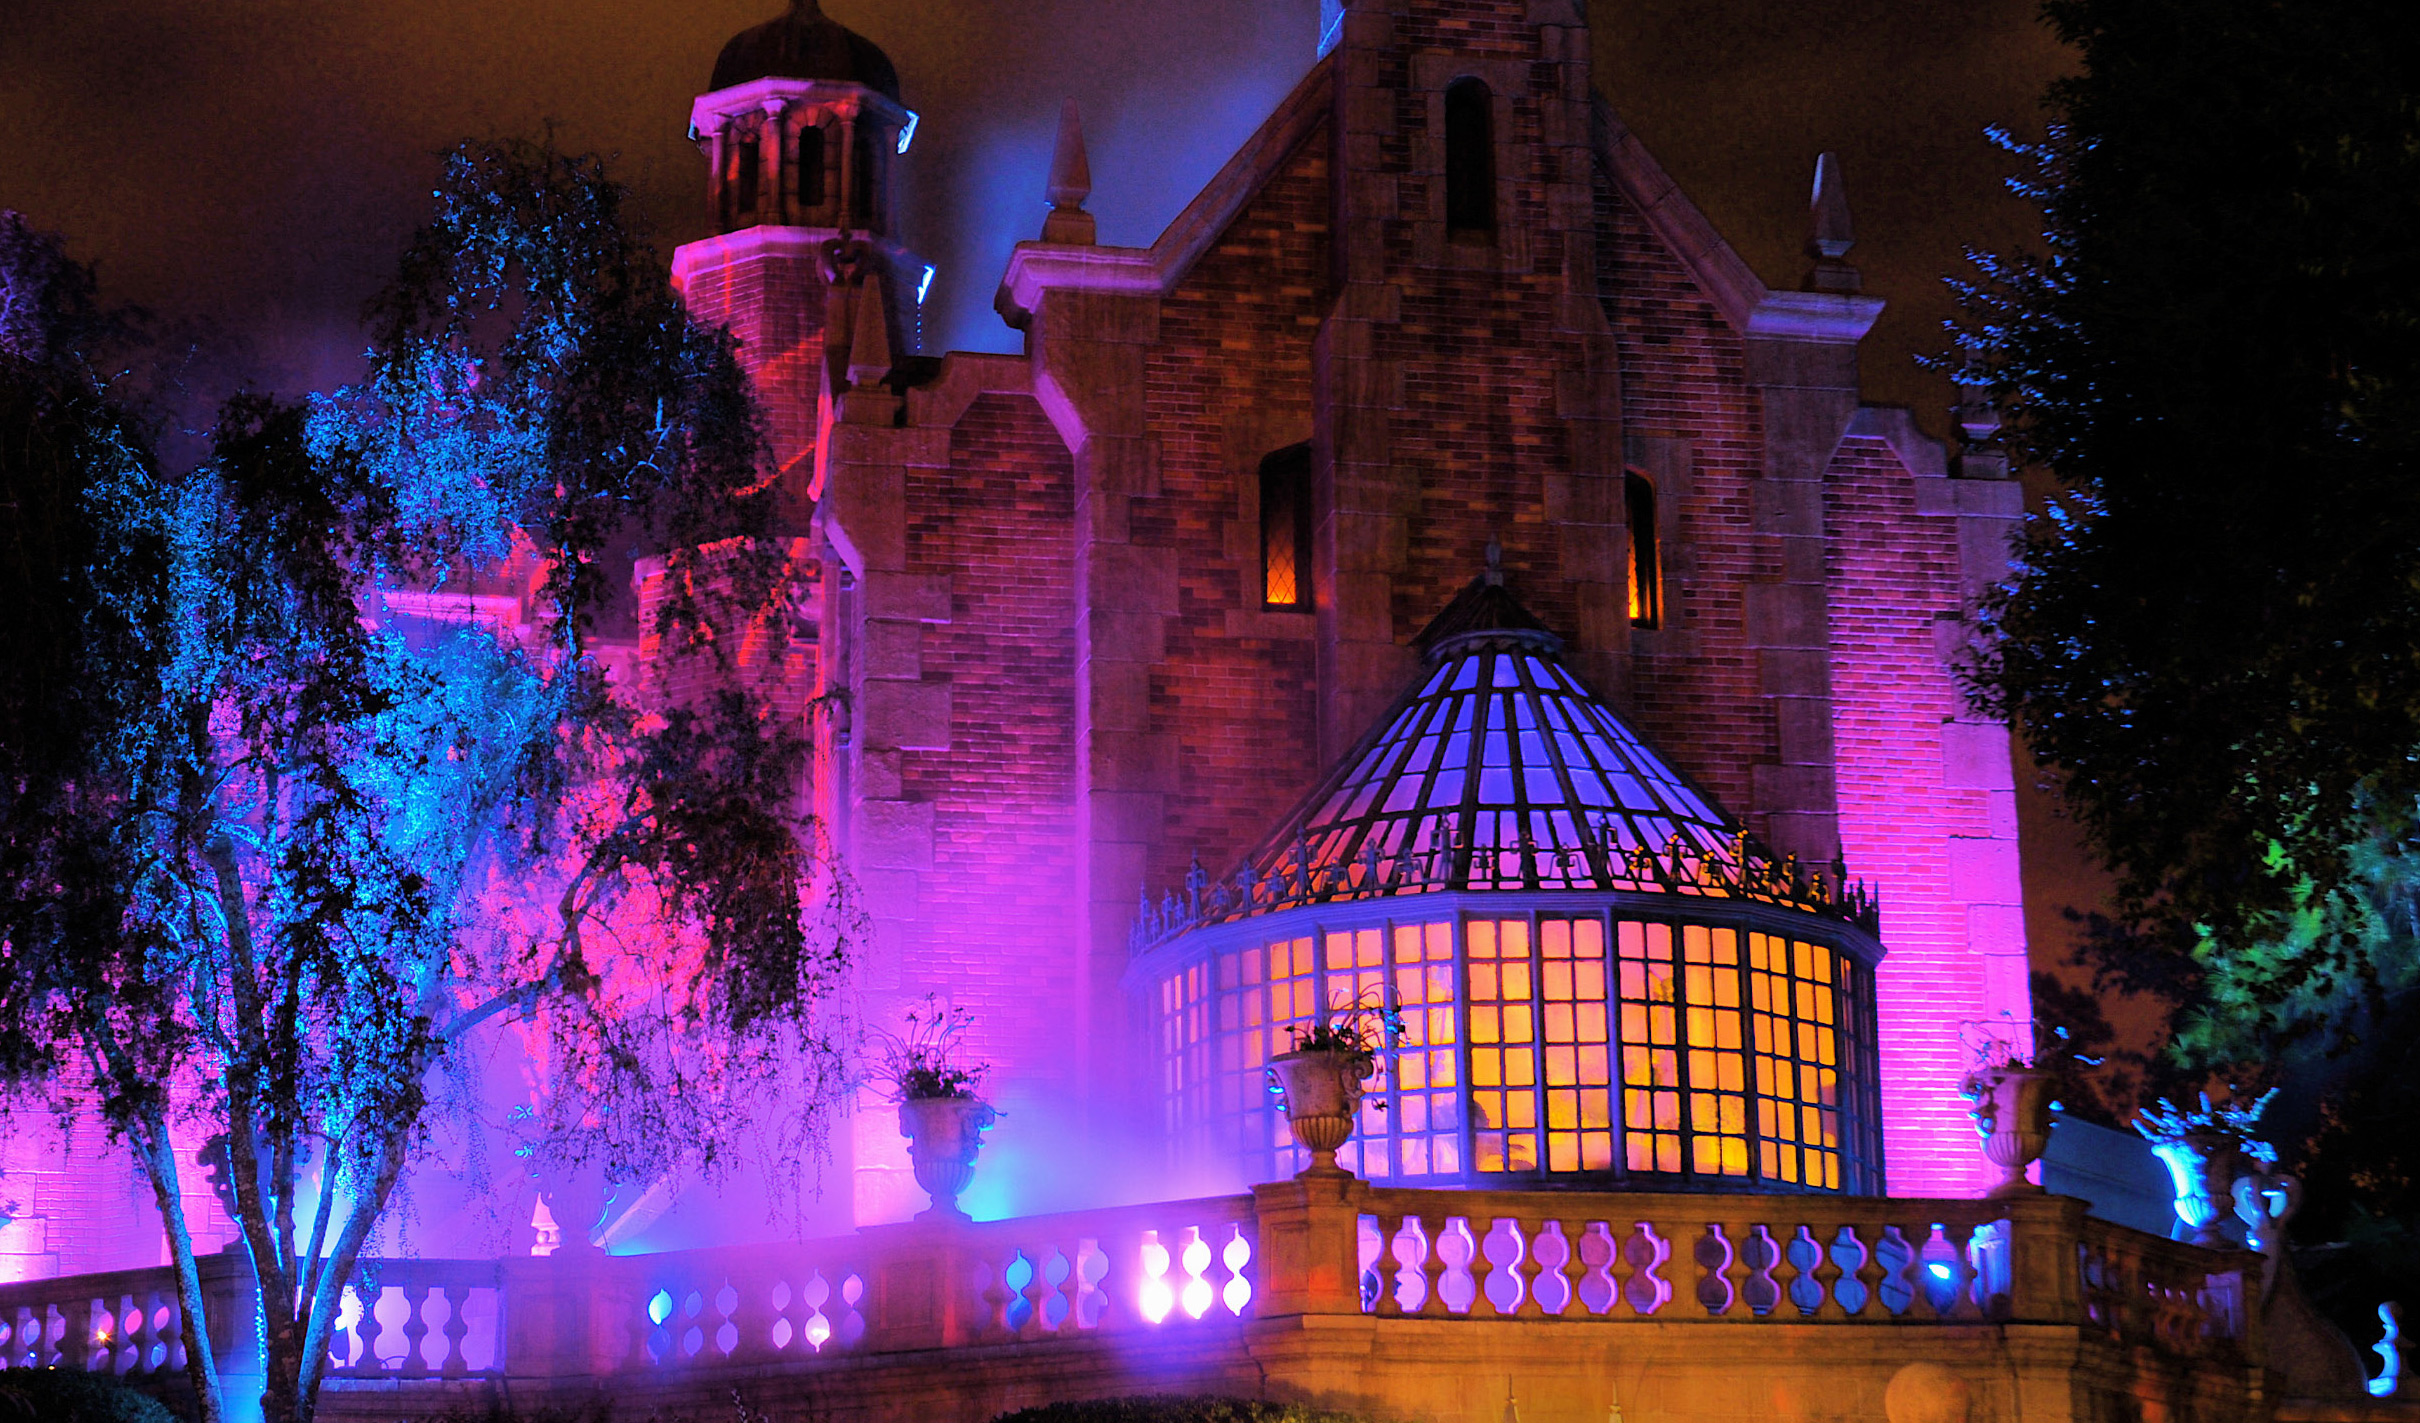 Mist rises from the Haunted Mansion as its exterior illuminates in the evening at Magic Kingdom park